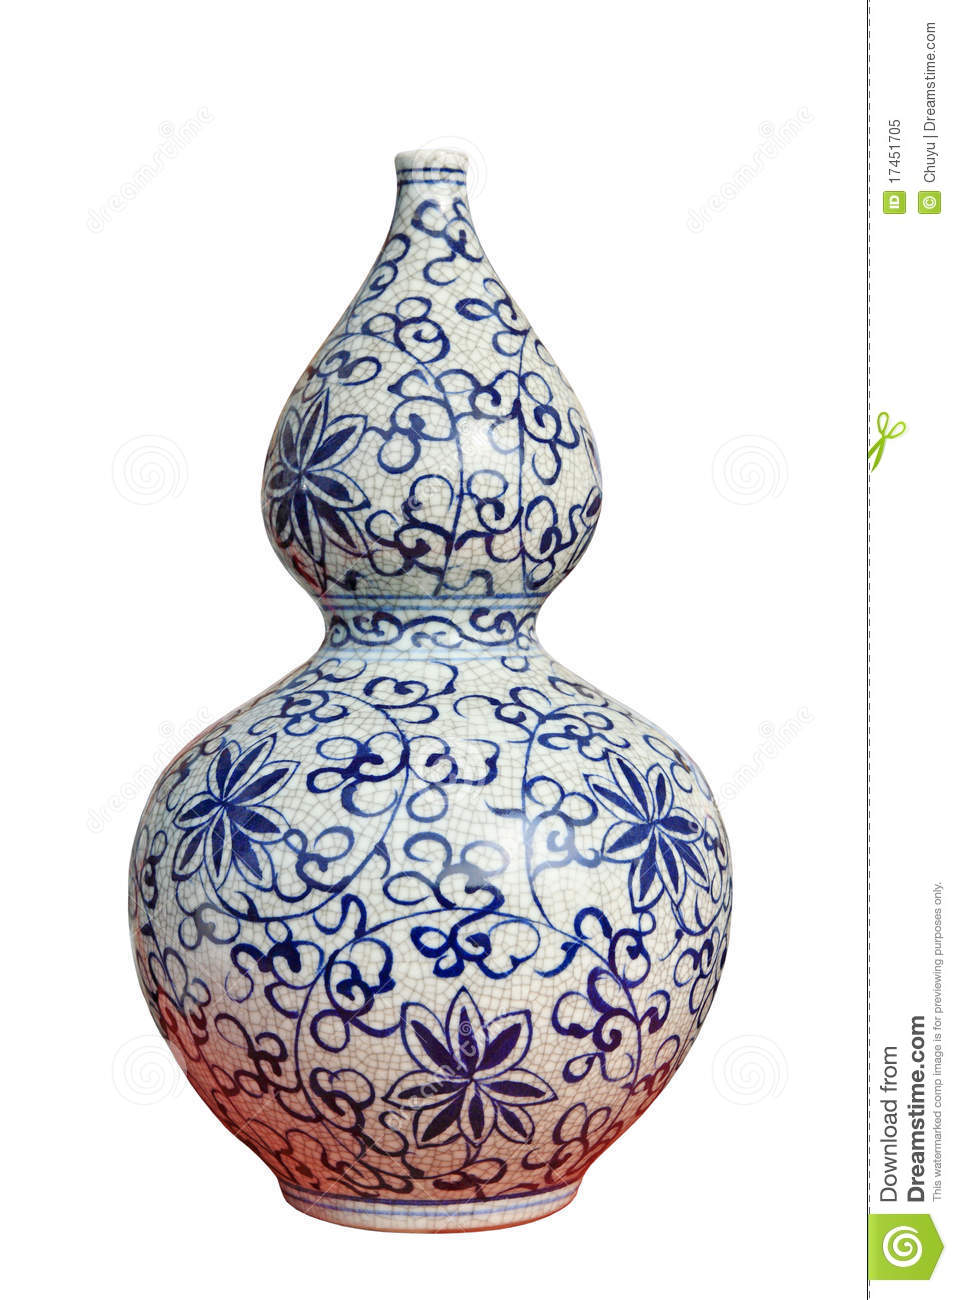 Chinese Decorative Gourd Porcelain Vase Stock Image - Image of ... on decorative gourd lamps, decorative gourd art, decorative gourd birdhouses, decorative gourd dolls, decorative gourds and squash, decorative gourd vessels,